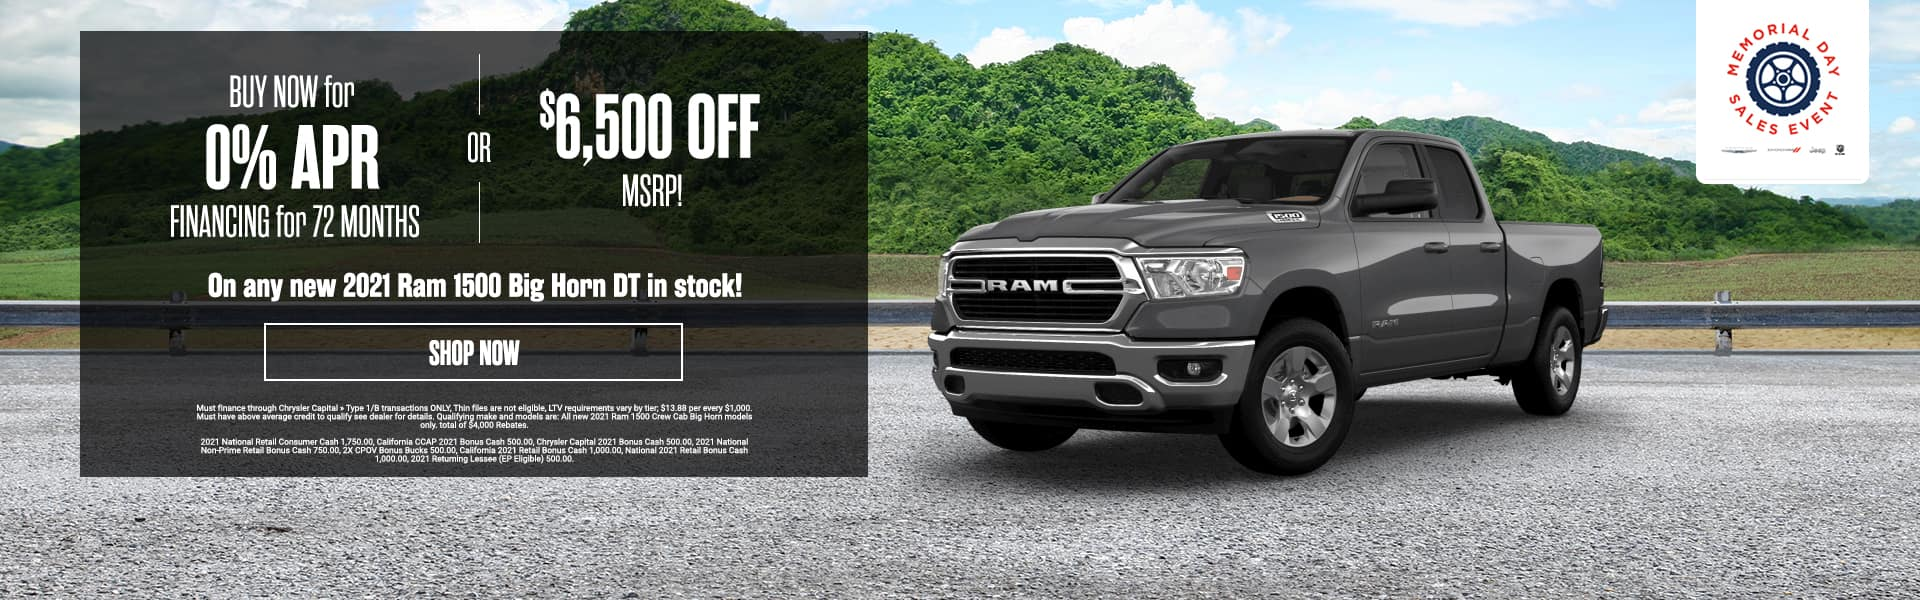 UY NOW for 0% APR FINANCING for 72 MONTHS or $6,500 OFF MSRP!! On any new 2021 Ram 1500 Big Horn DT in stock!